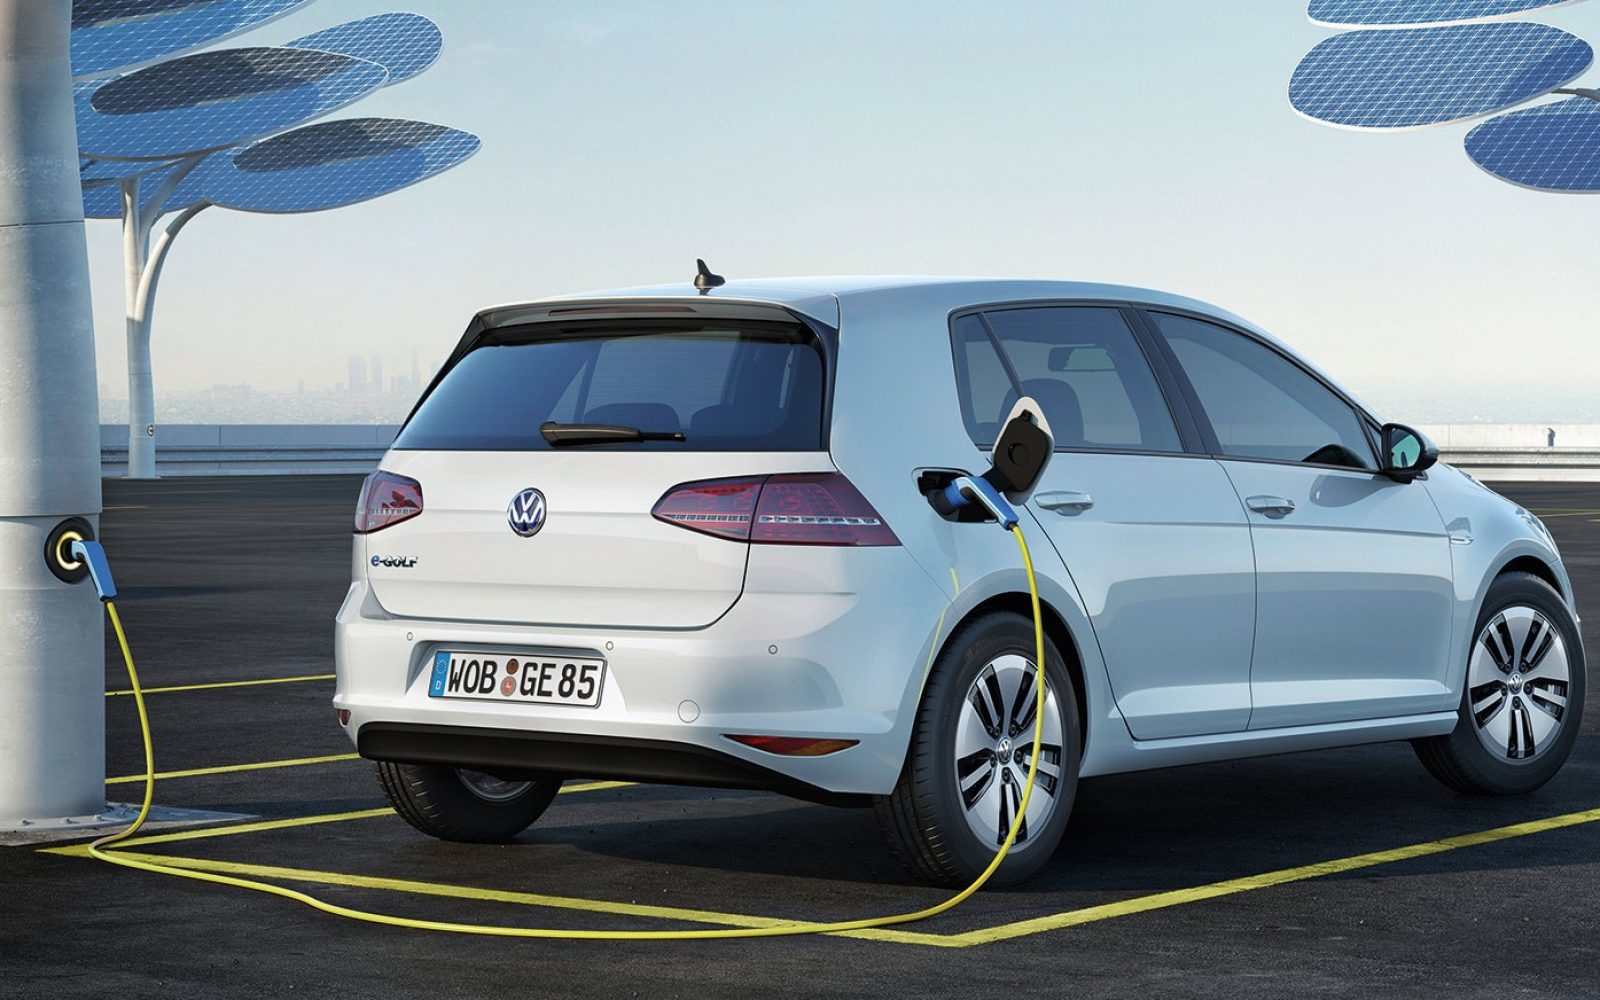 VW Announces New Plan To Build 2 To 3 Million All-electric